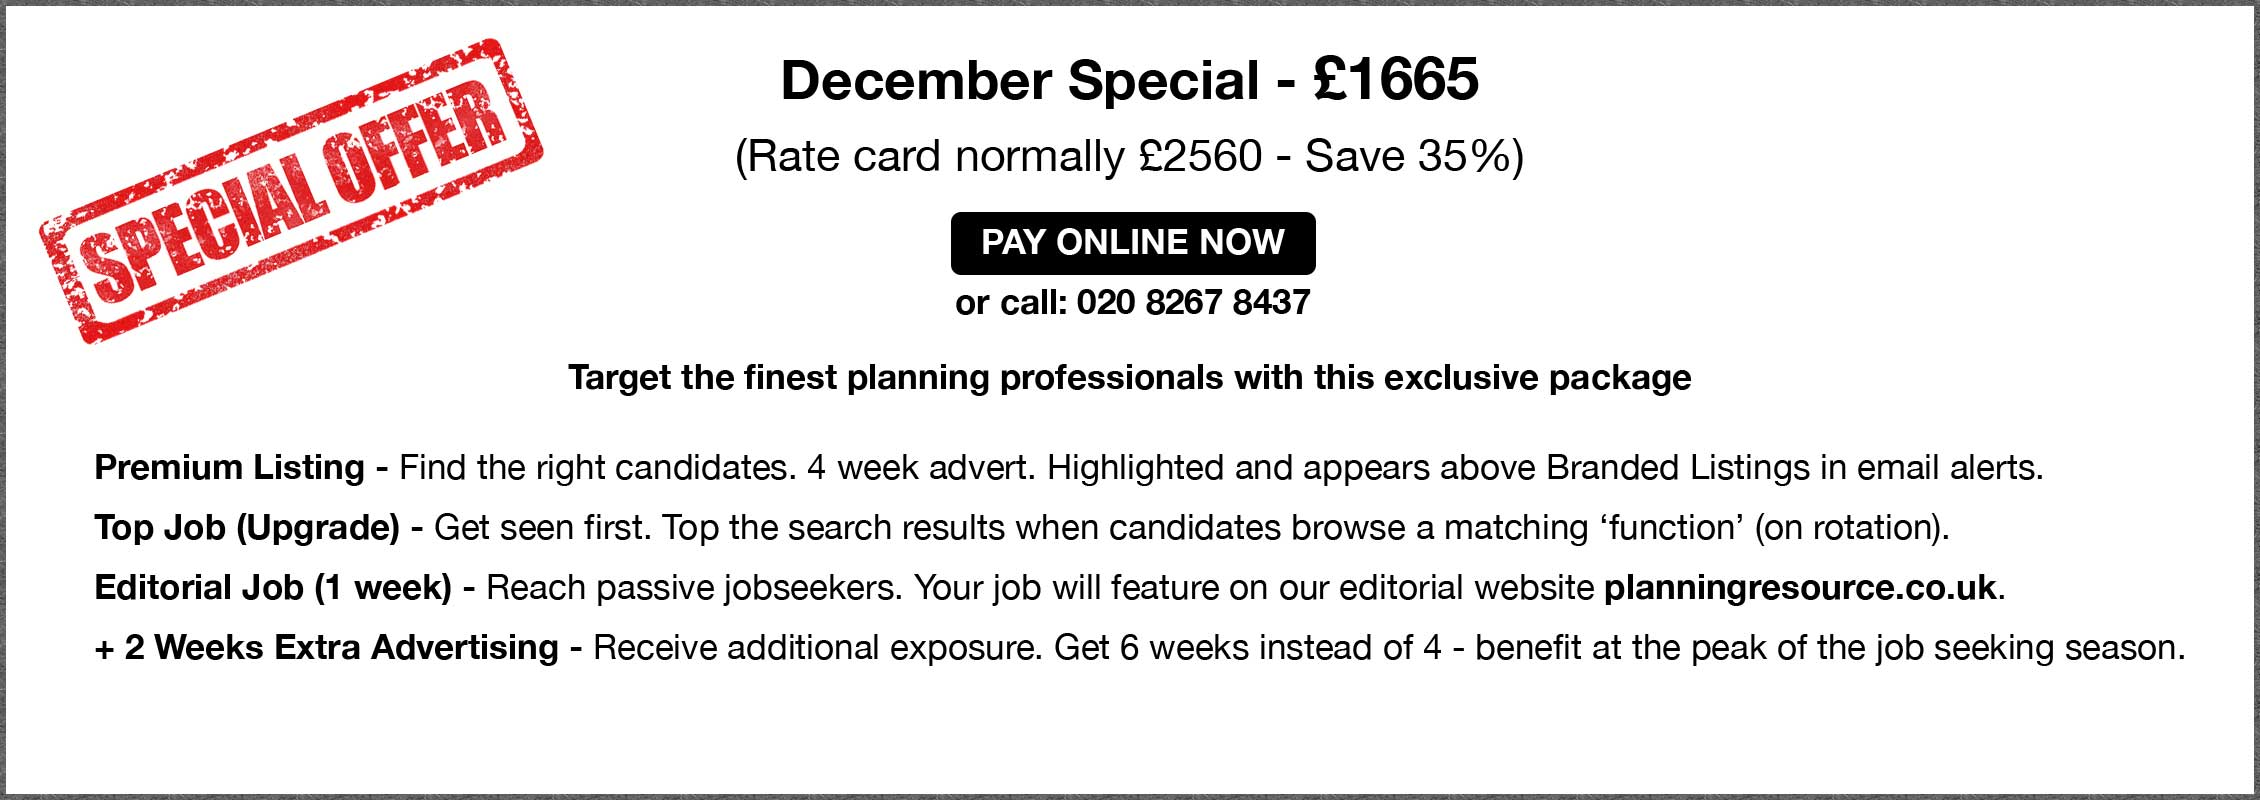 Special Offer. December Special - £1665.